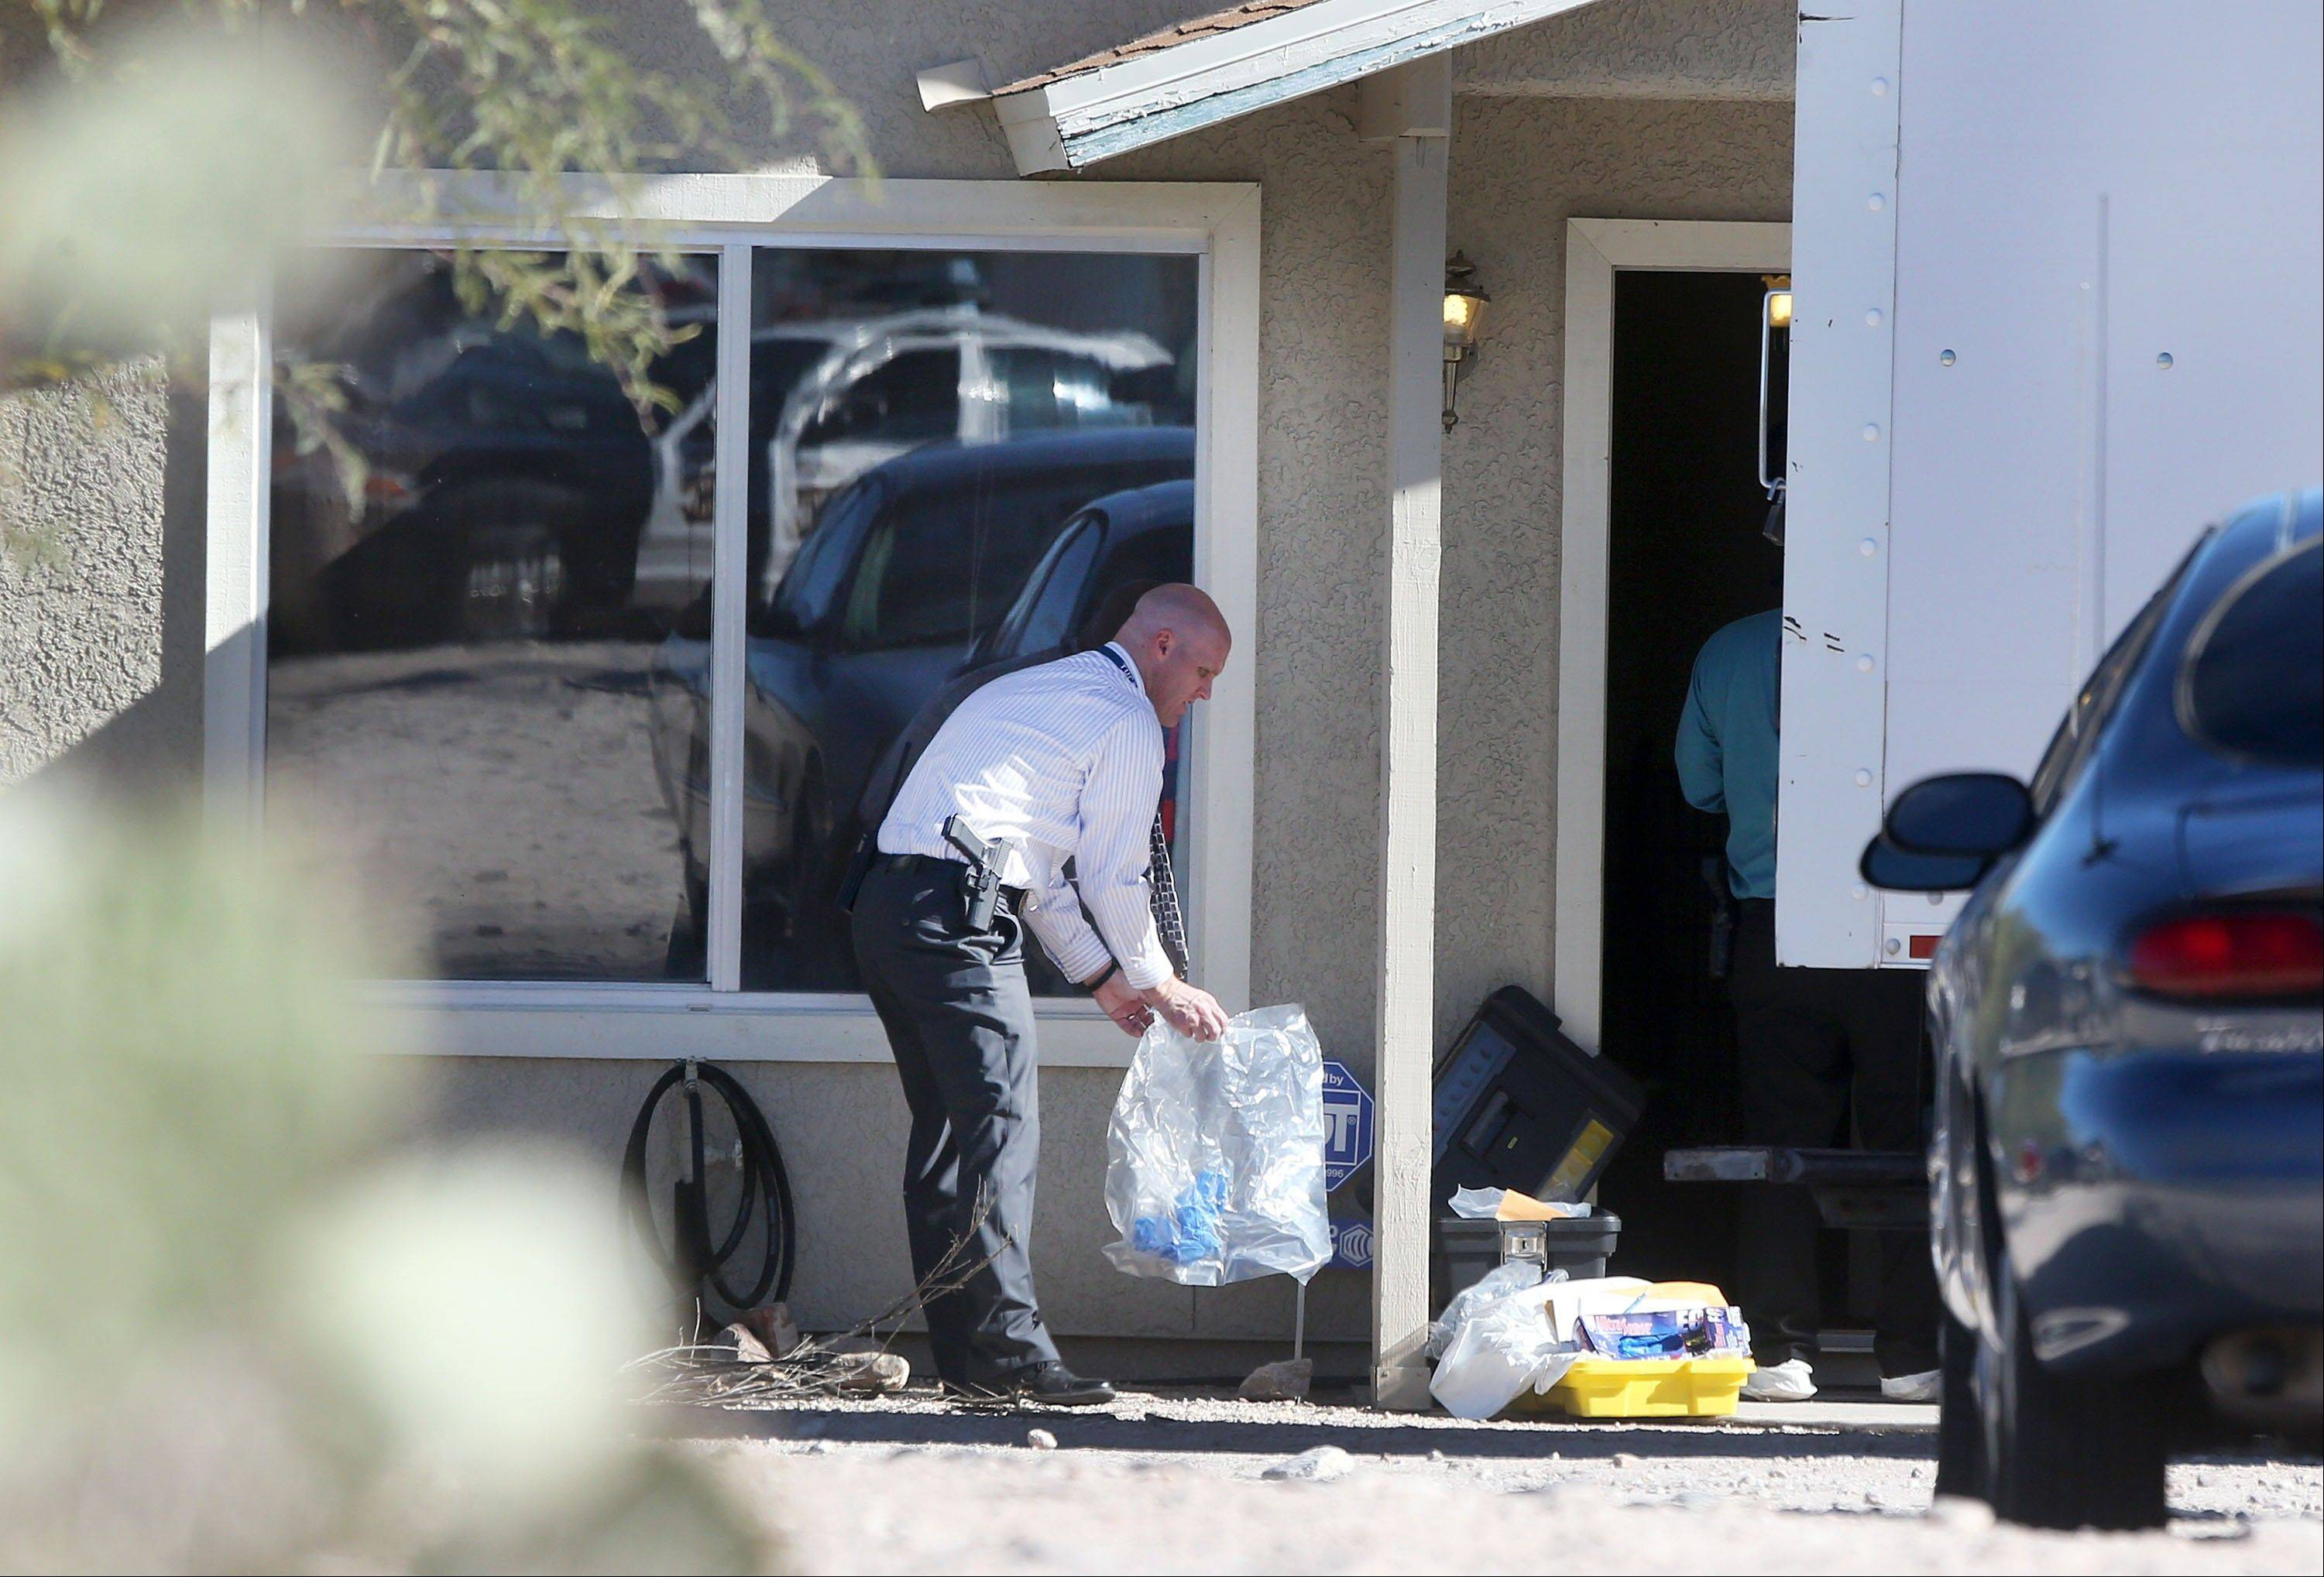 Tucson Police Department investigators and evidence technicians investigate the scene at a home where two people were arrested Tuesday, Nov. 26, 2013, after three girls told authorities that they have been imprisoned for possibly the past two years, in Tucson, Ariz. Tucson police said the girls are siblings � ages 12, 13 and 17 � and their mother and stepfather have been arrested in a case that's being investigated as alleged child abuse and imprisonment.